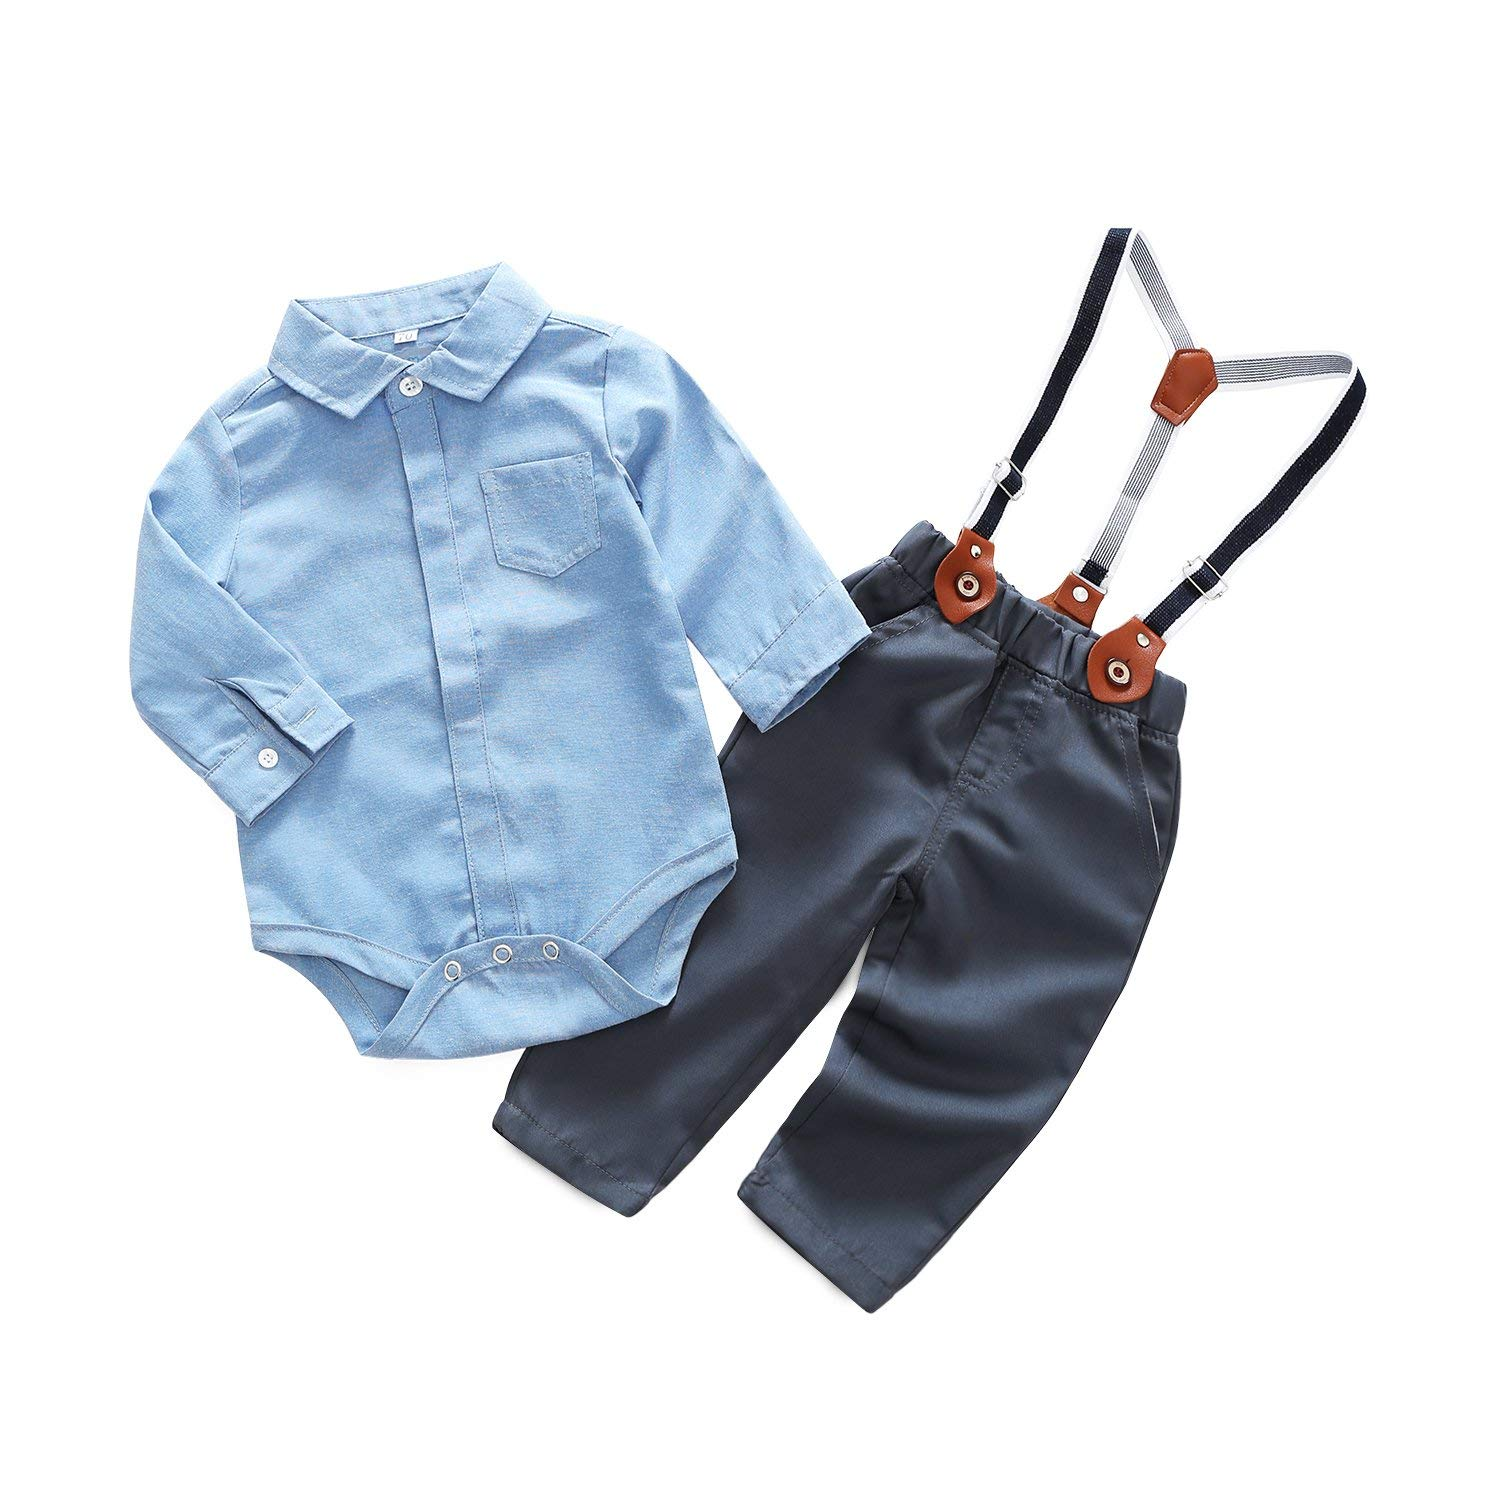 Kimocat Baby Boy Casual Suit 2pcs Cotton Long Sleeve Solid Color Onesie Shirt Pant with Suspenders Outfits Clothes Set